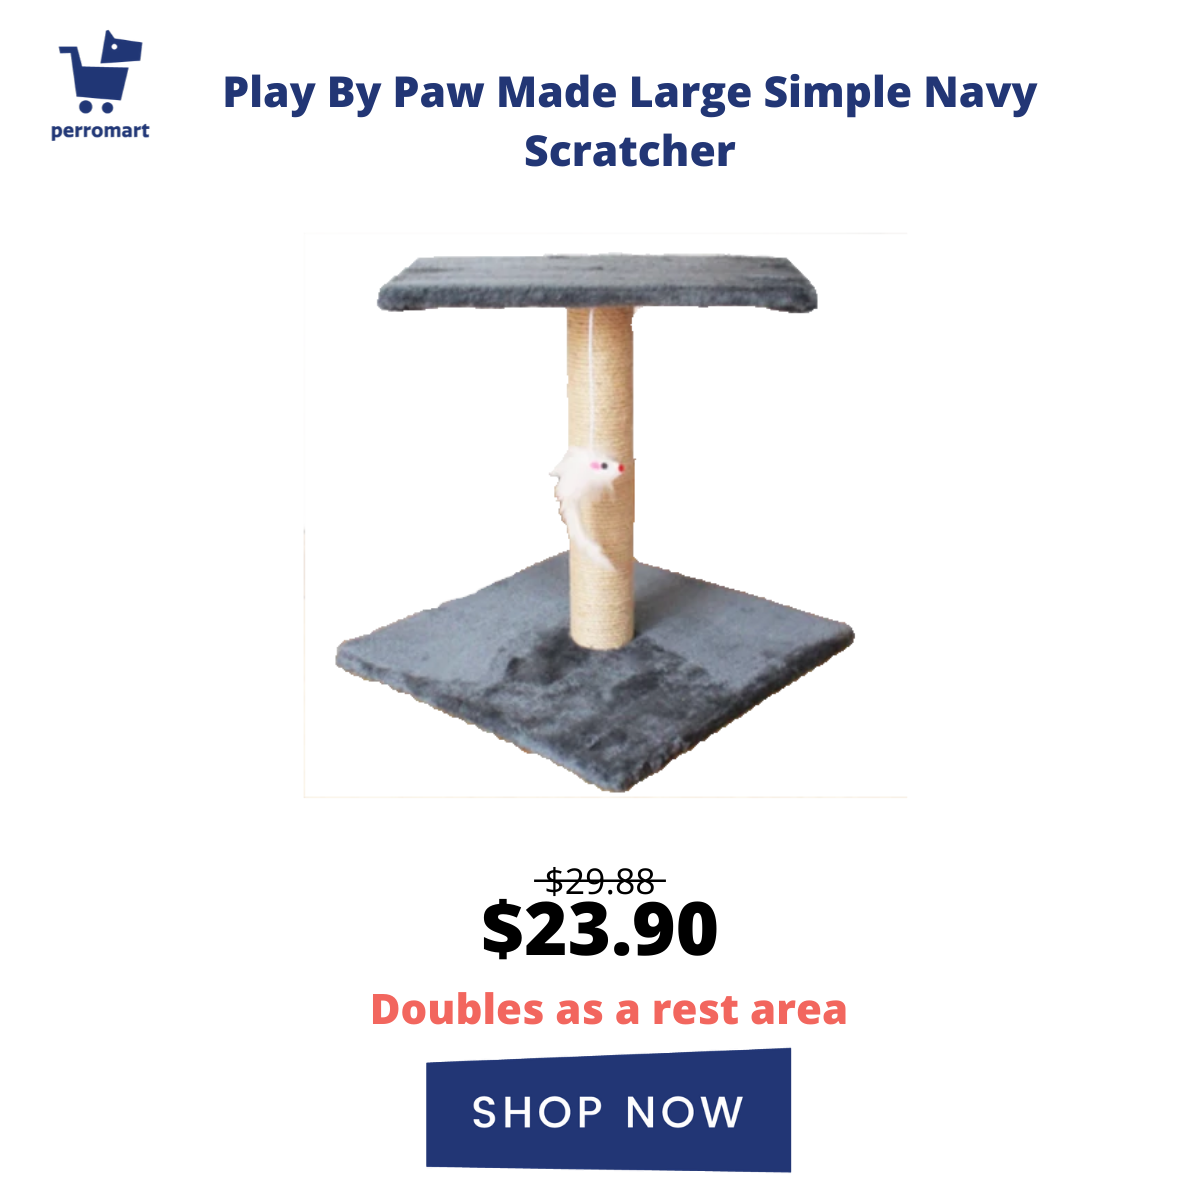 Play By Paw Made Large Simple Navy Scratcher